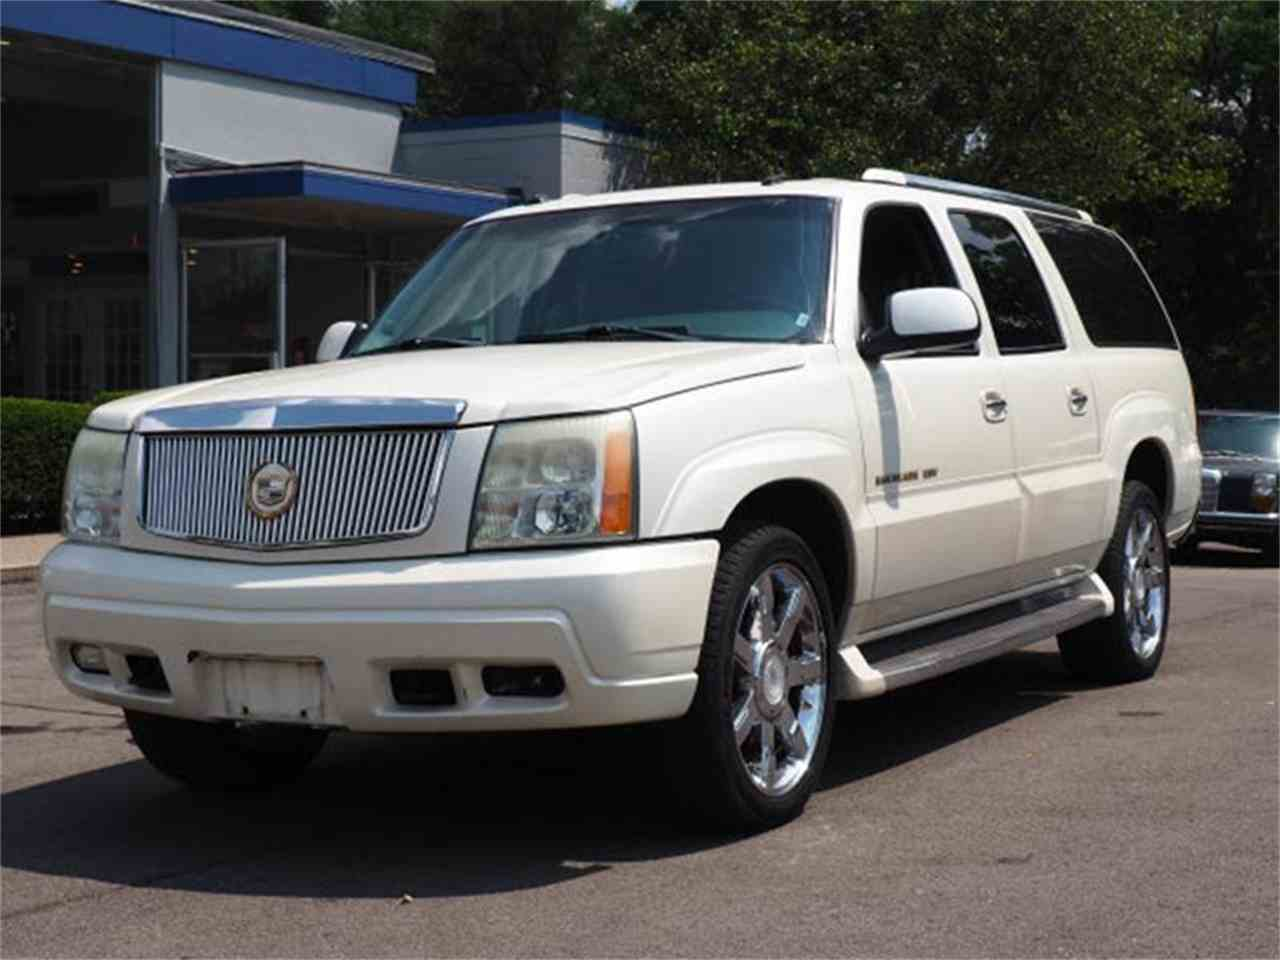 Large Picture of 2003 Escalade - $3,000.00 - MBL6